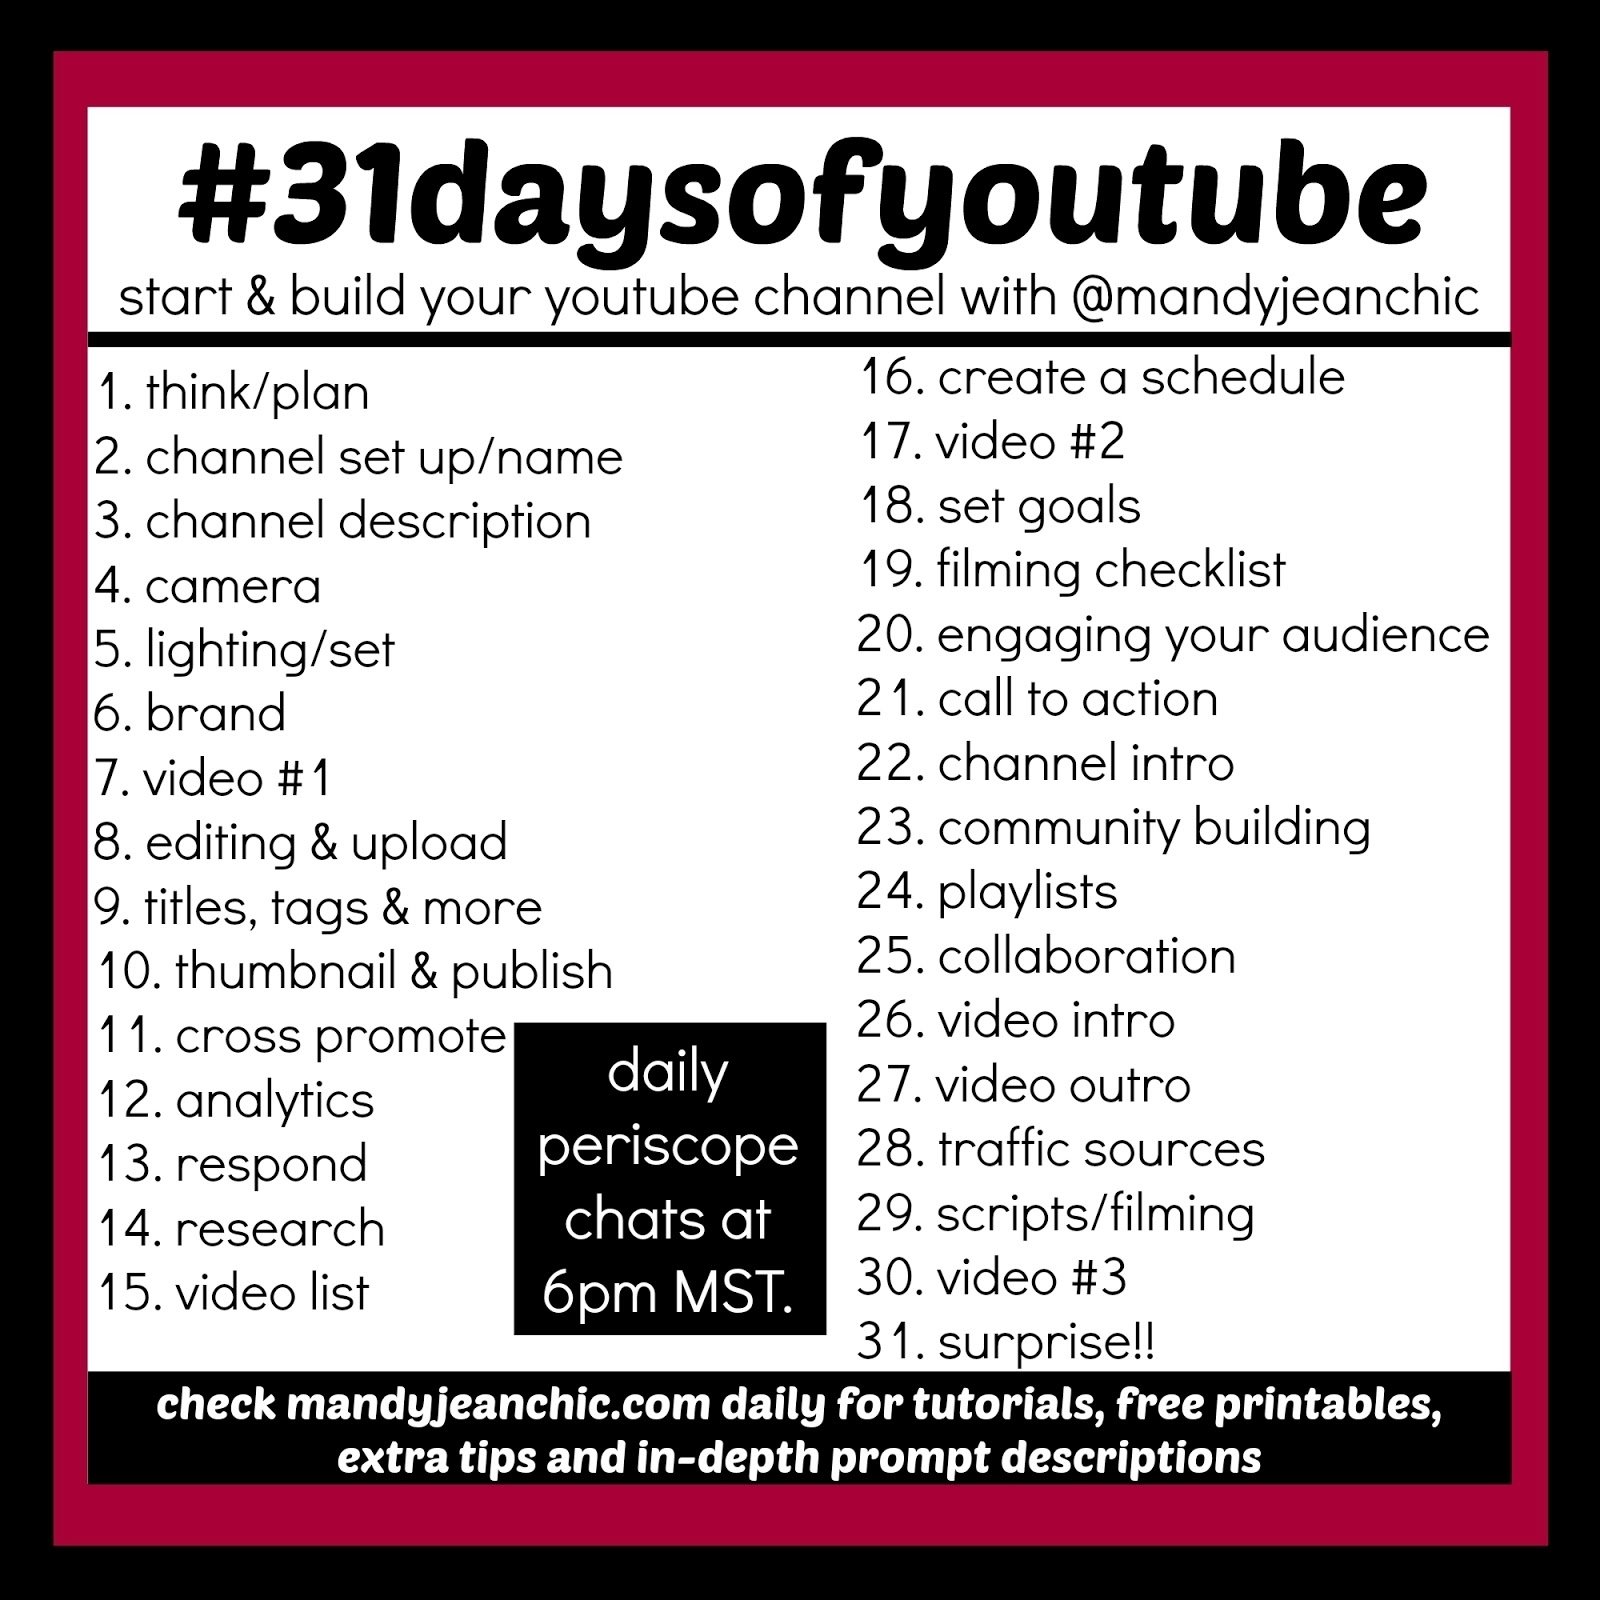 10 Gorgeous Ideas For A Youtube Channel mandy jean chic 31daysofyoutube day 1 think plan organizing your 4 2020